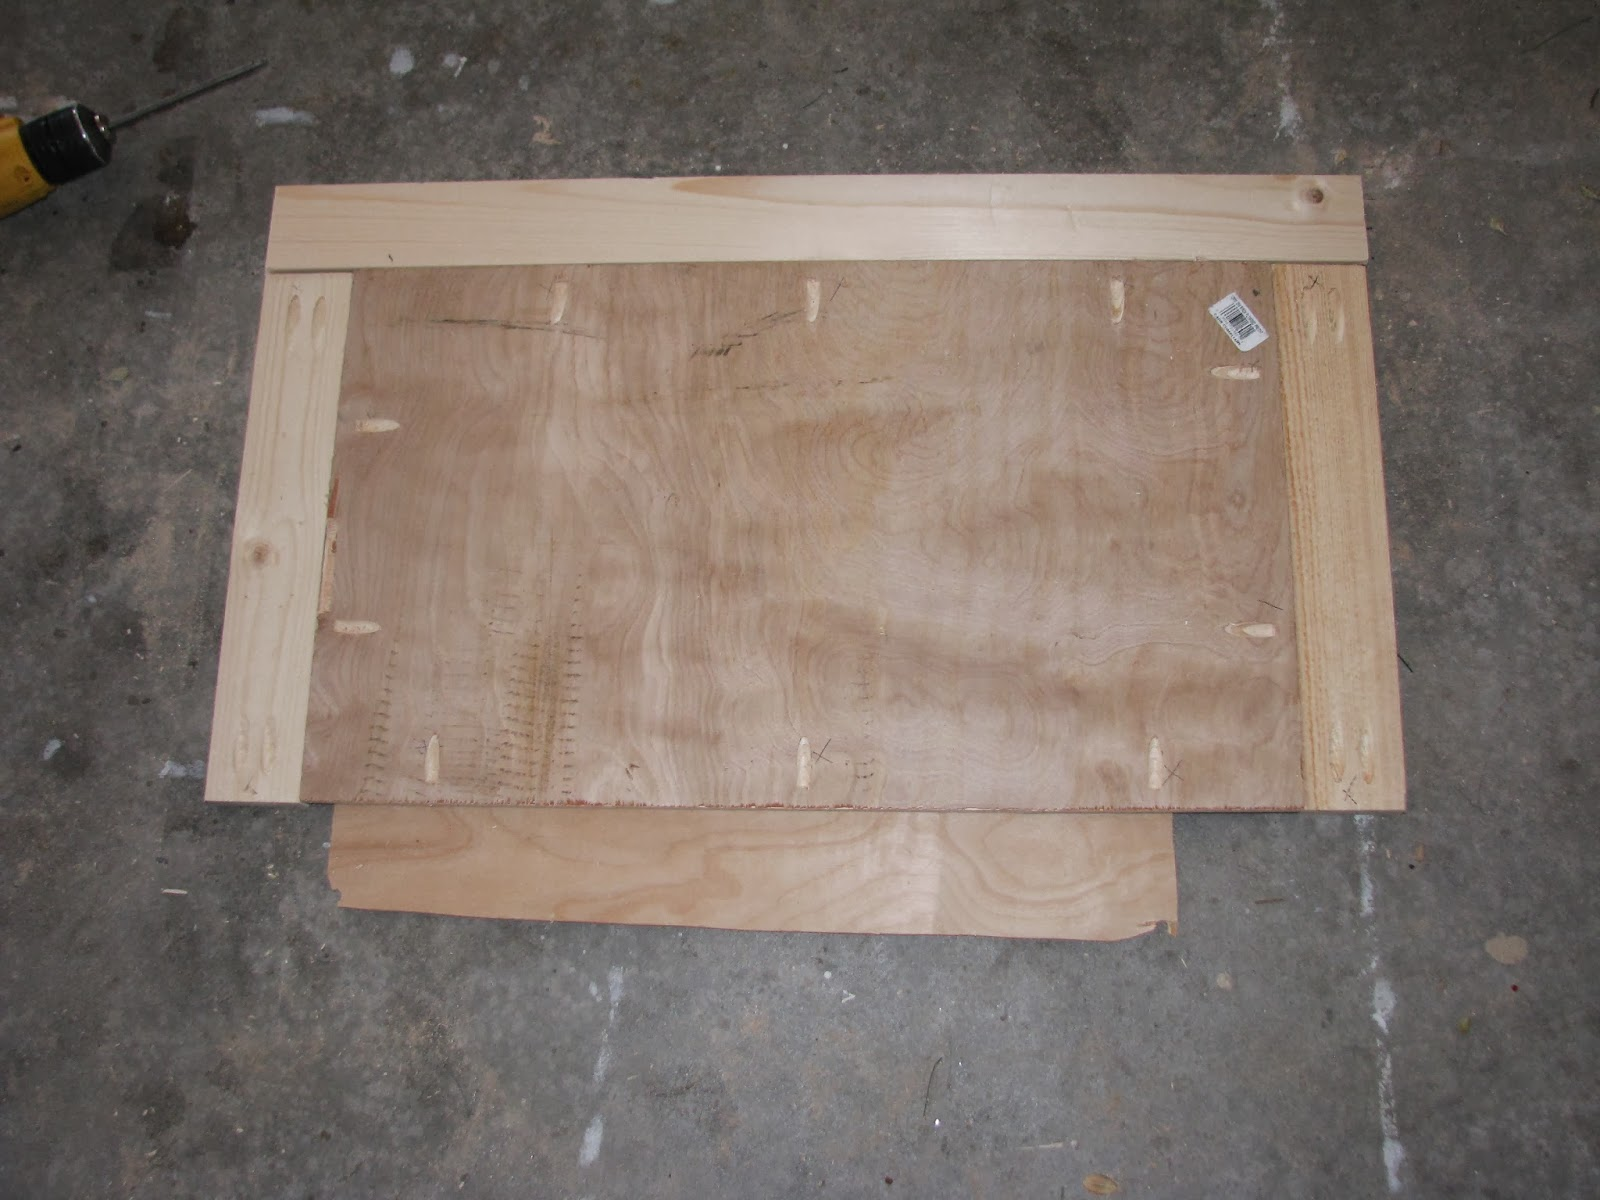 making kitchen cabinet doors metal canisters door jig and how to route decorative pattern or